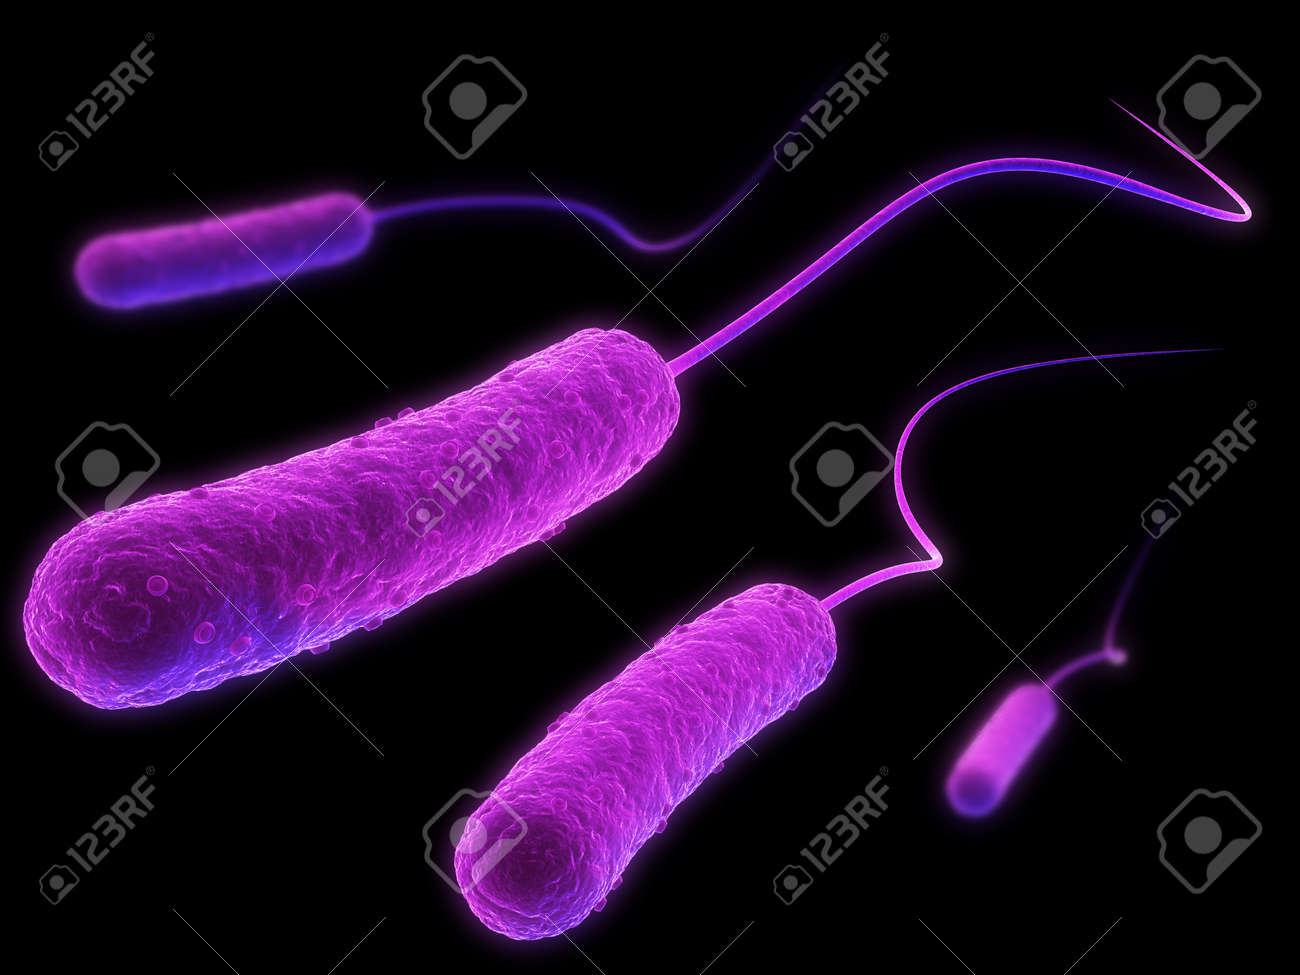 e-coli bacteria Stock Photo - 4844201